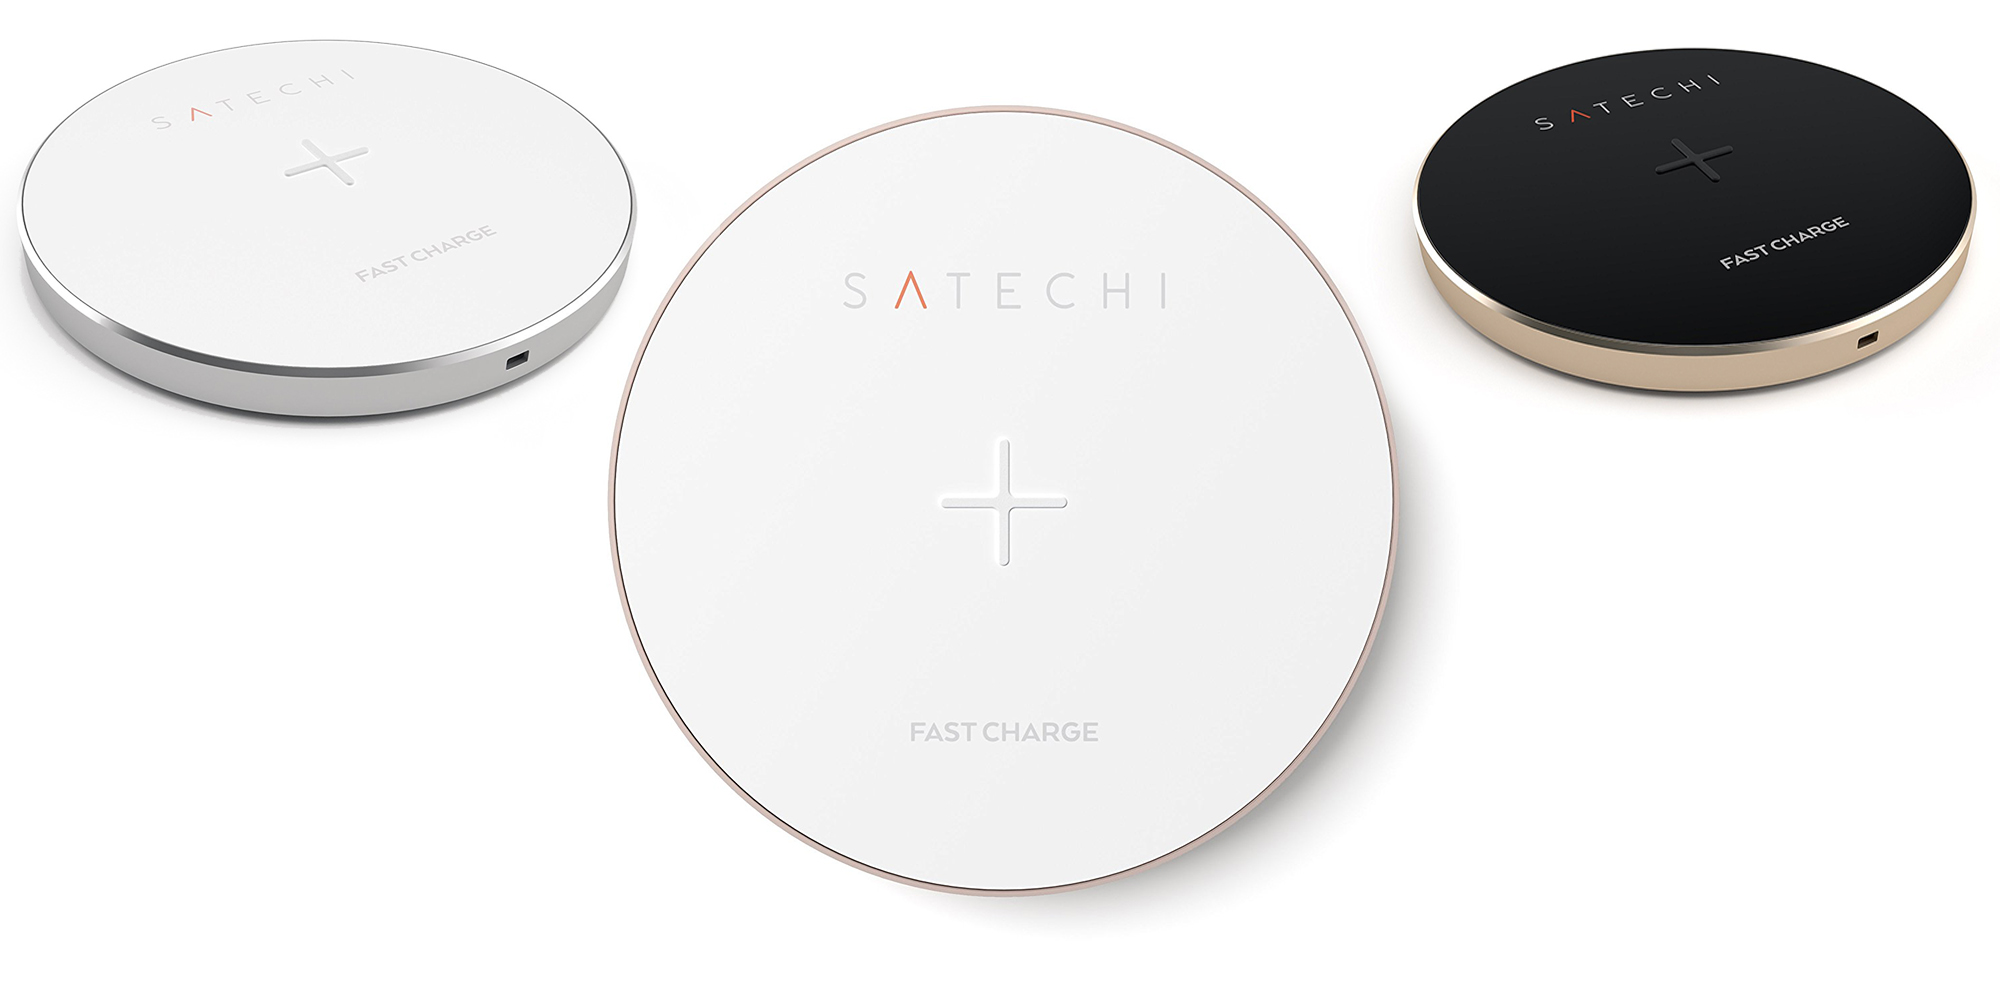 Satechi Qi Charger for iPhone 8